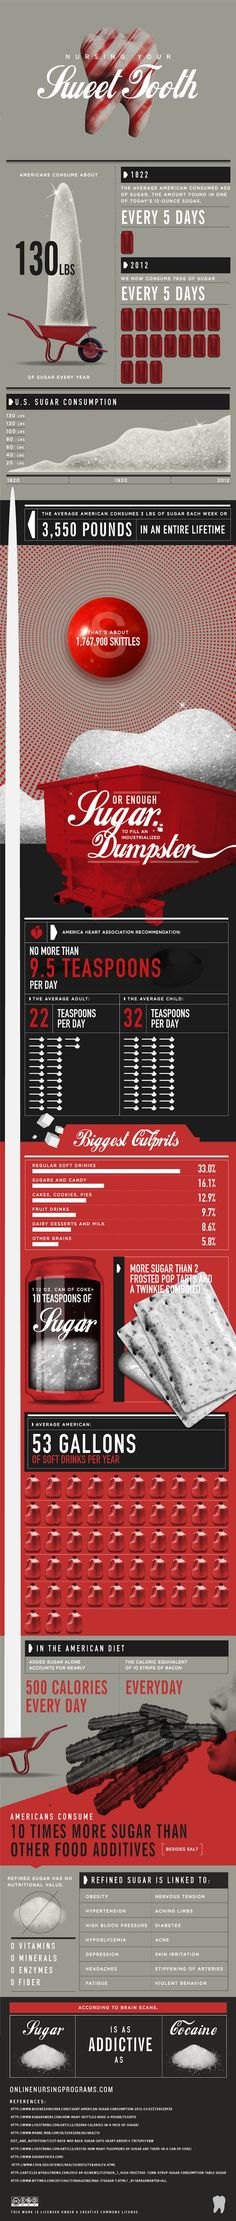 Infographic: How Much Sugar Do Americans Consume?